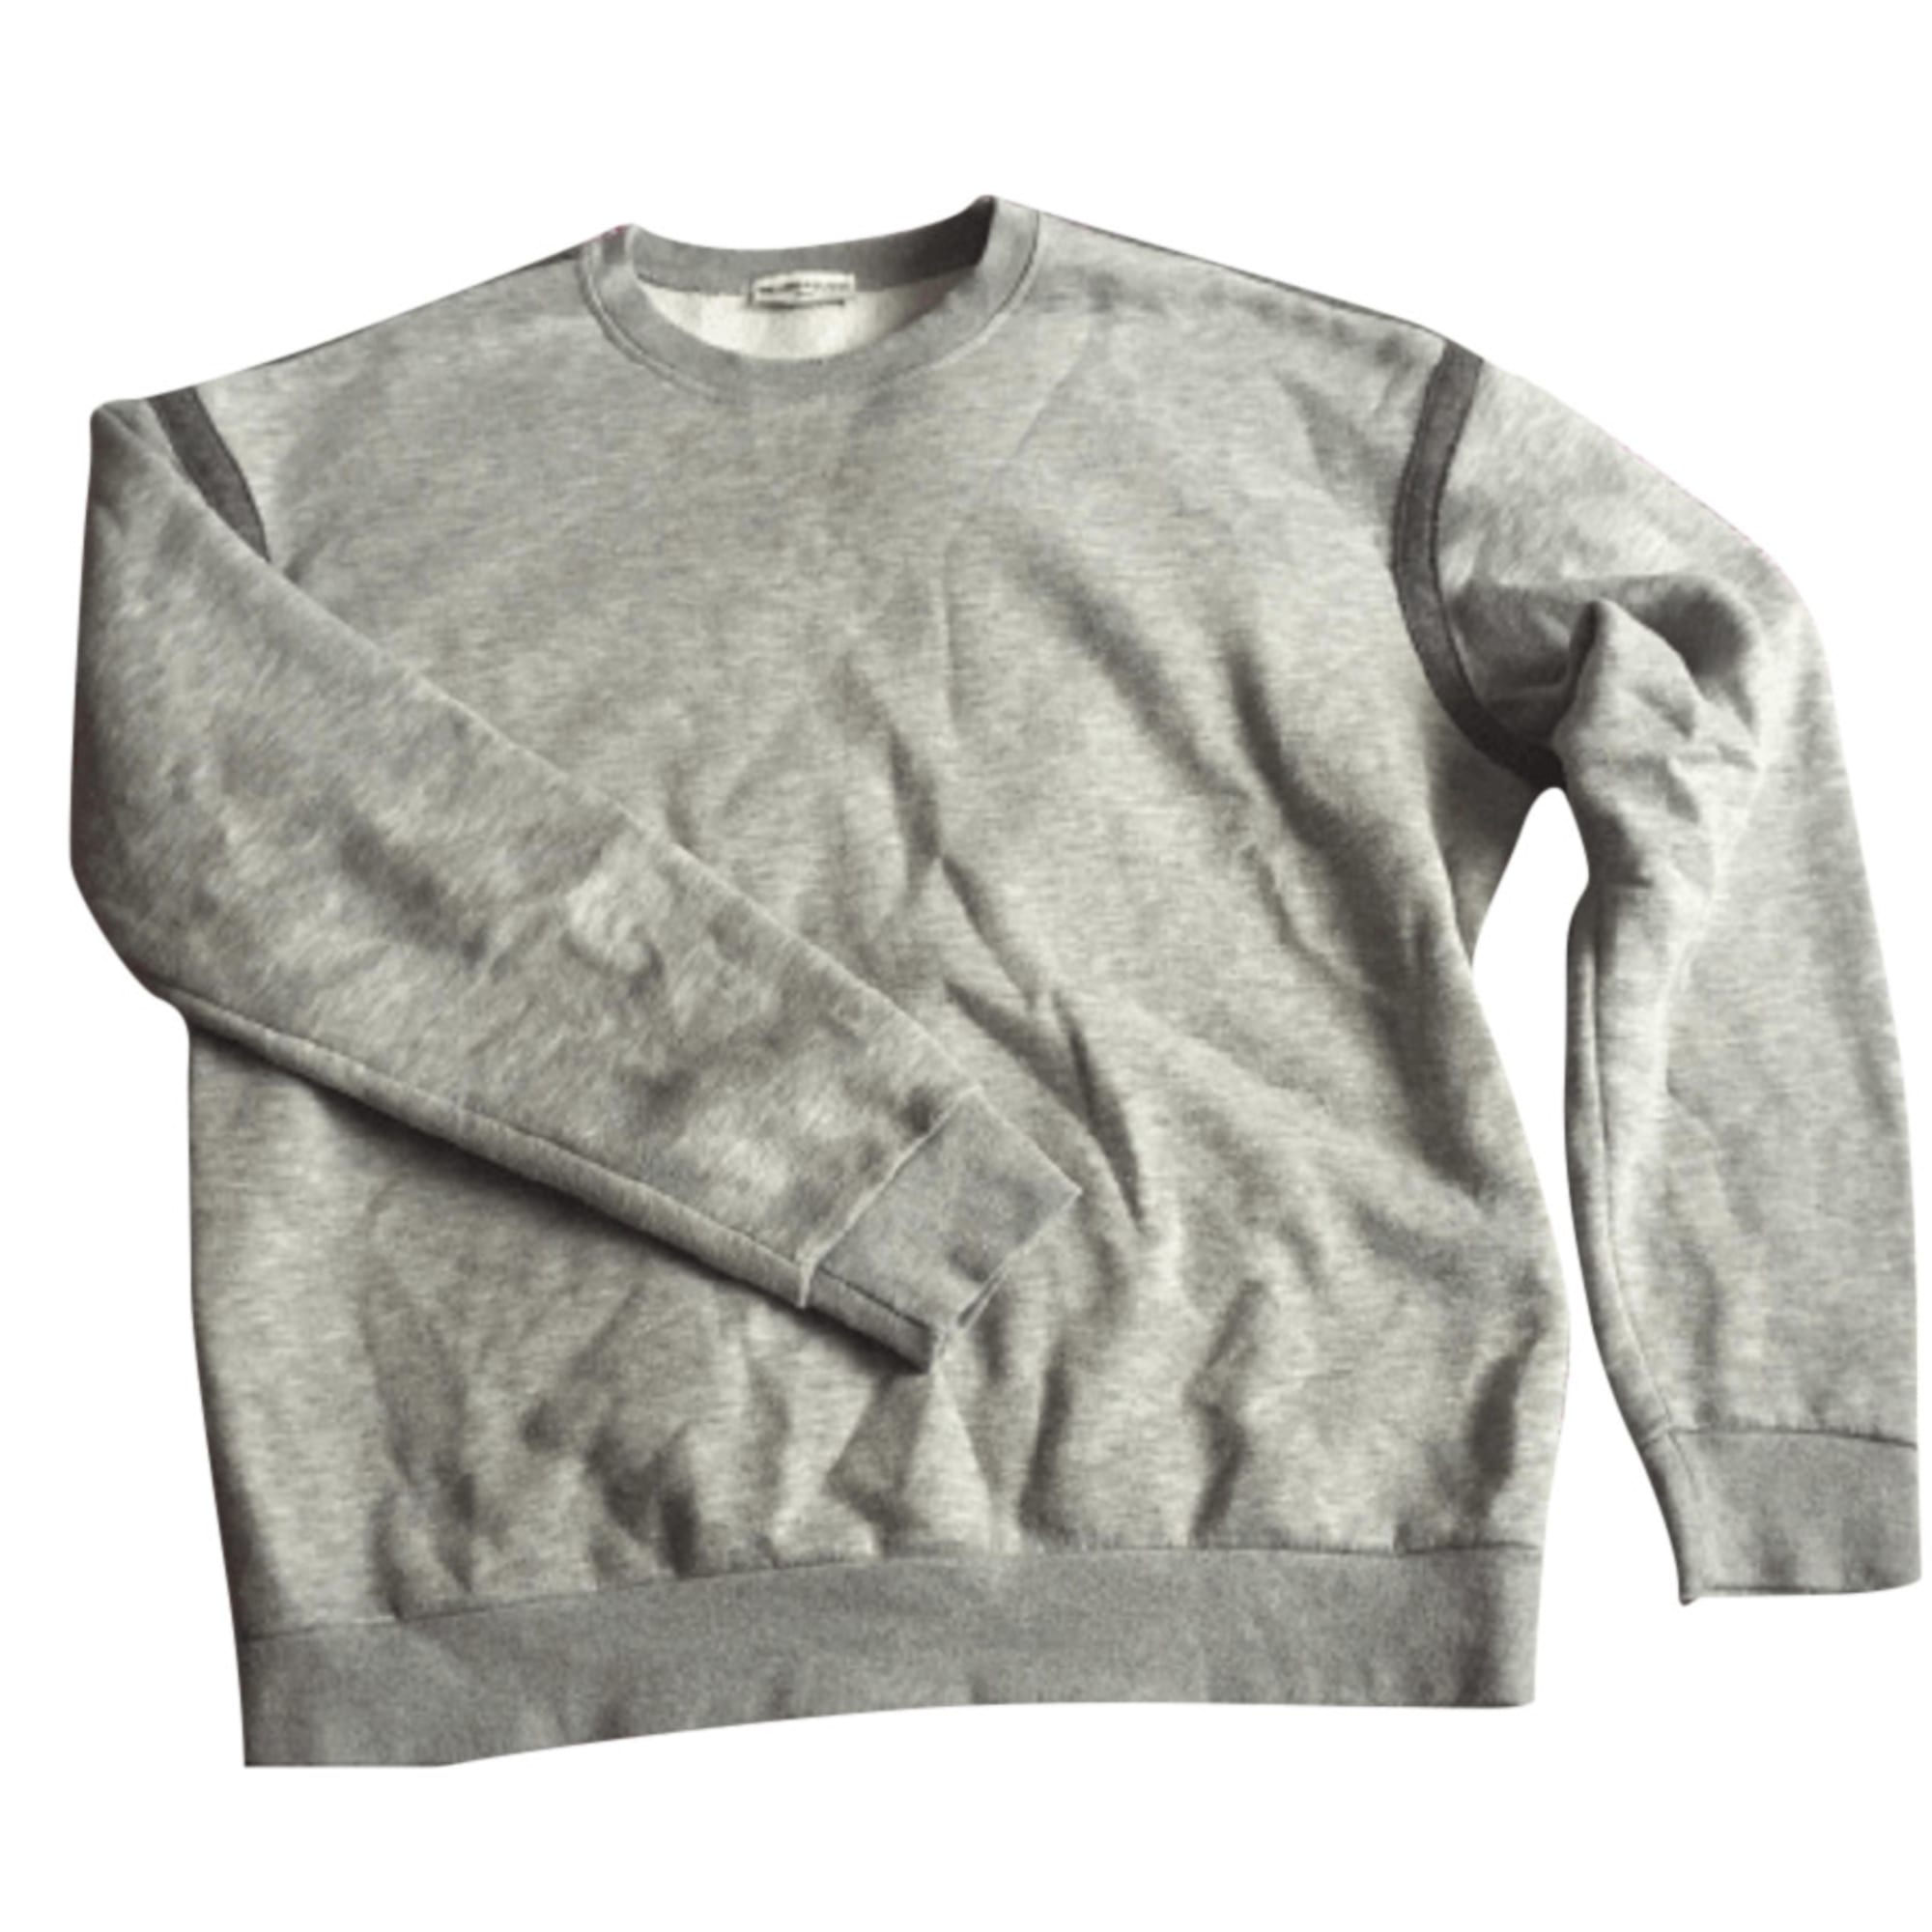 Sweater MELINDA GLOSS Gray, charcoal